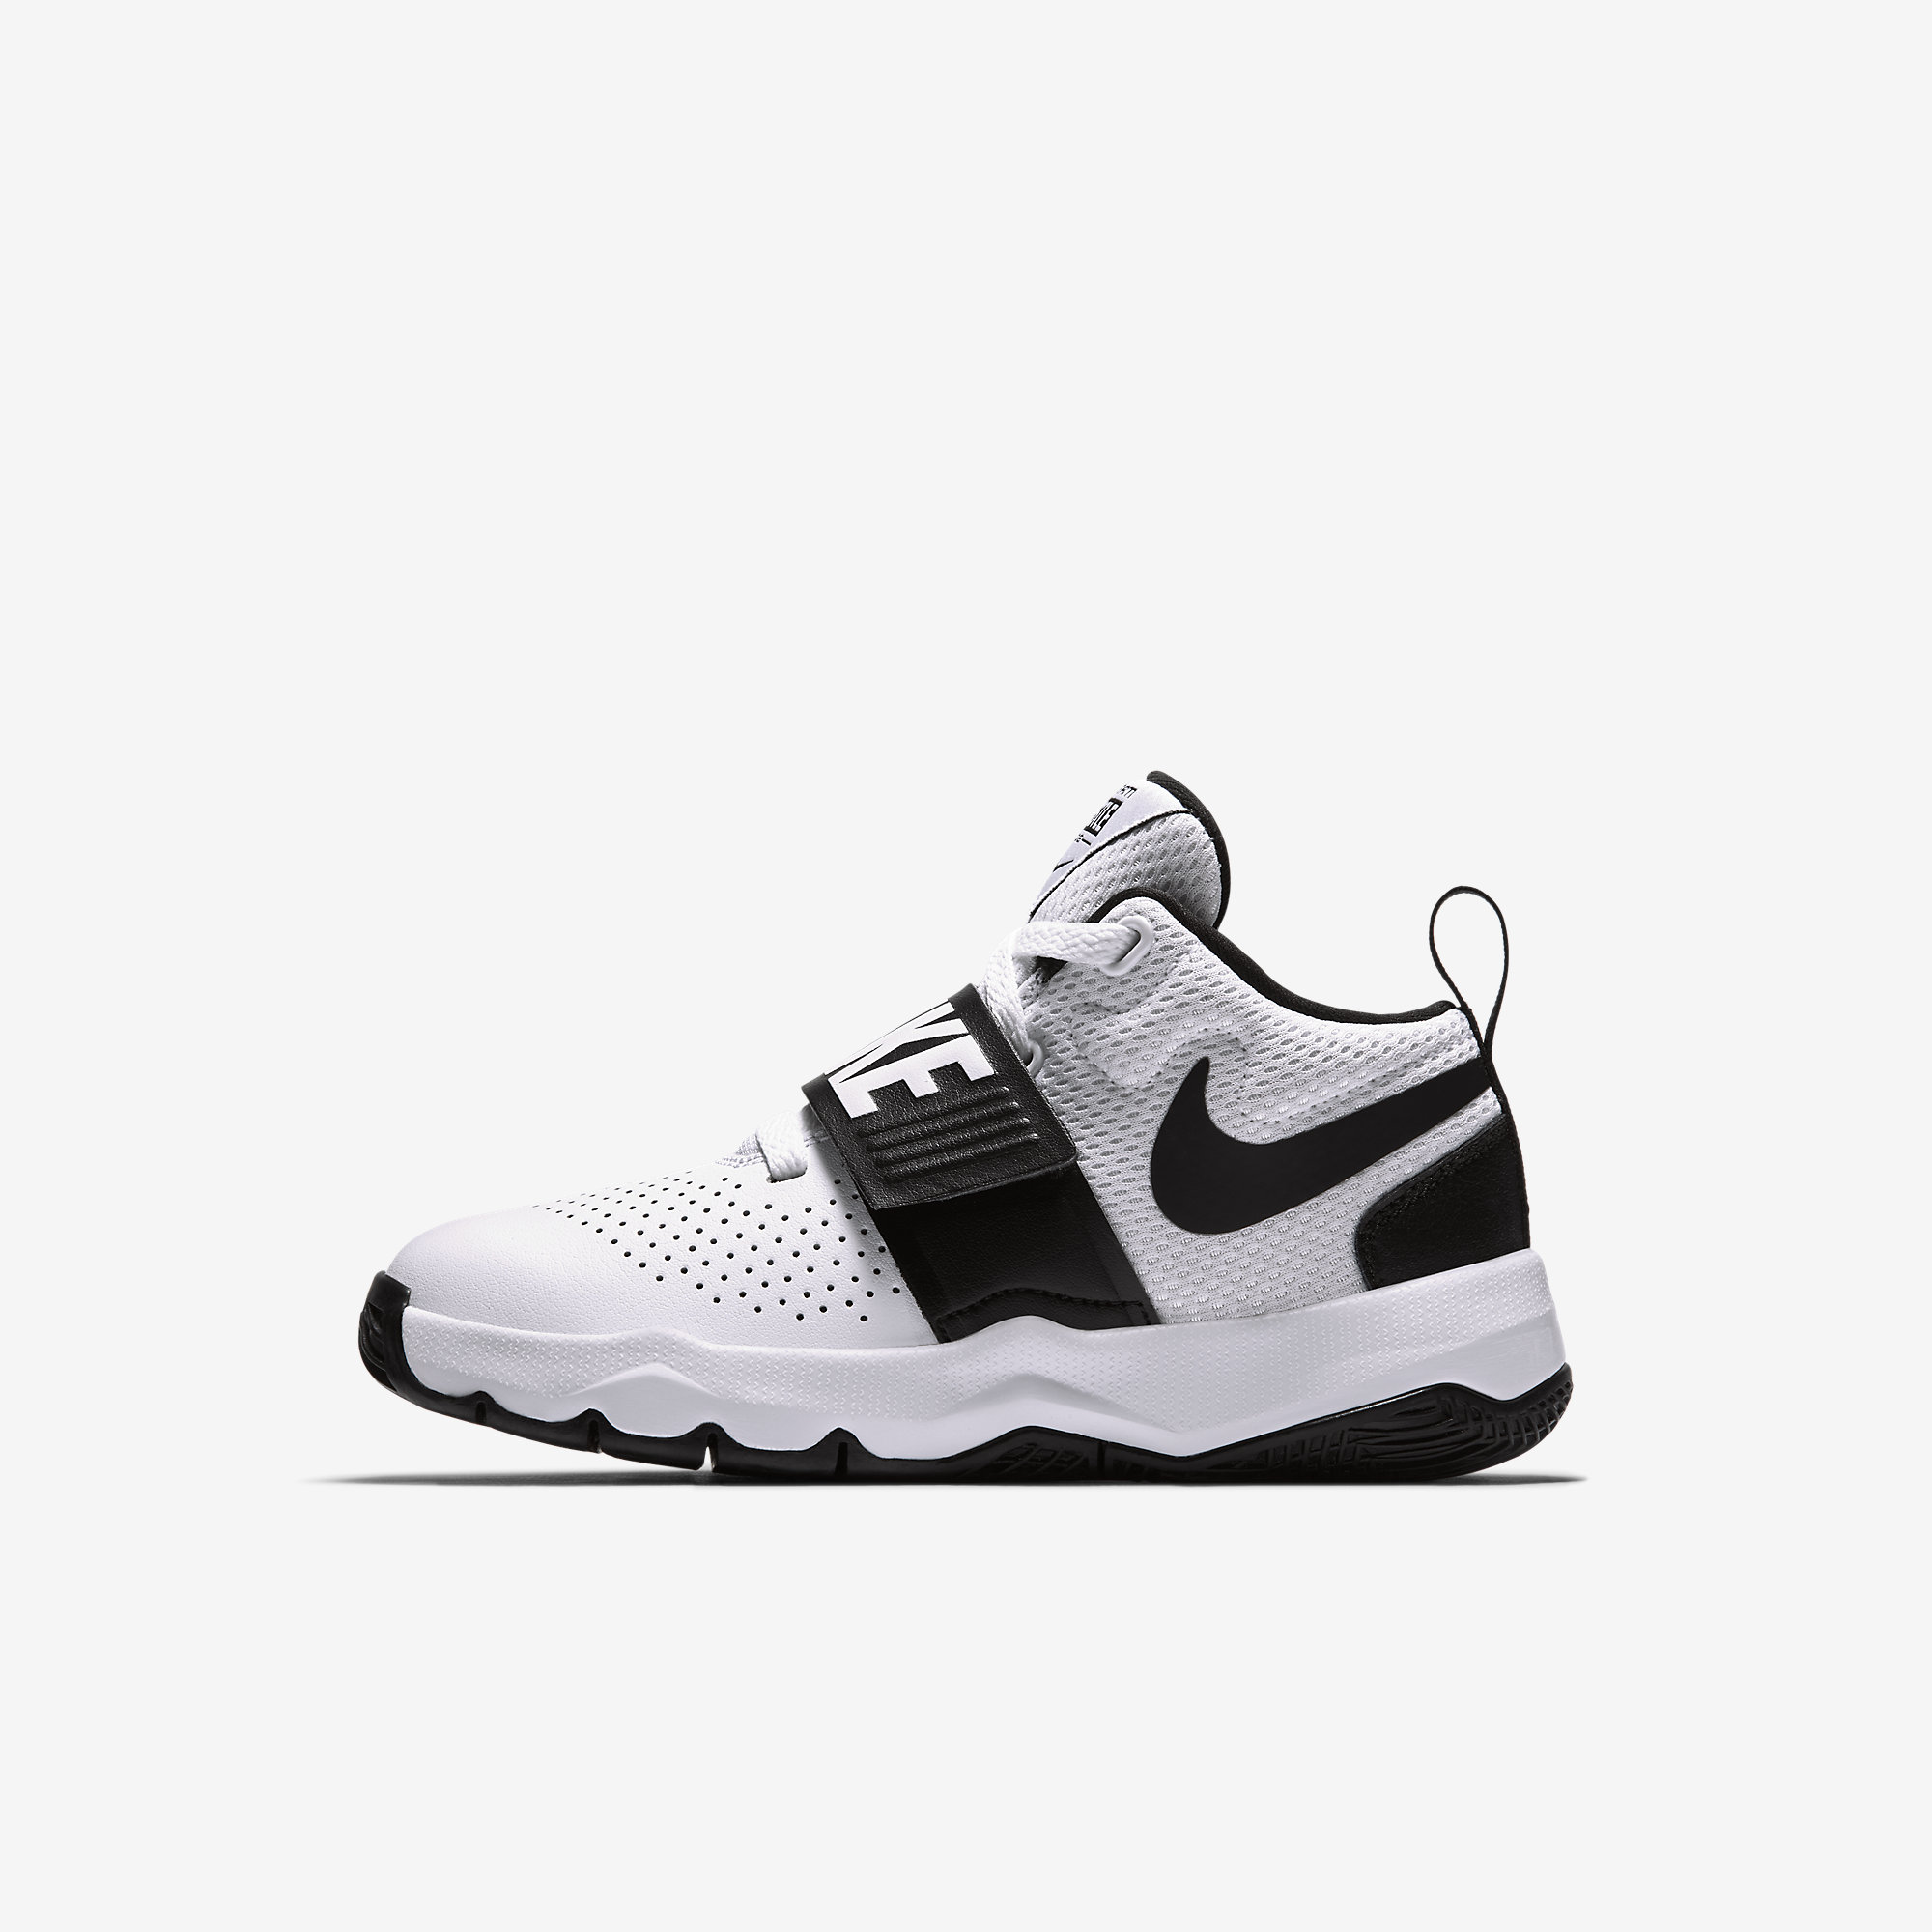 Nike Boys TEAM HUSTLE D 8 (PS) Sneakers 881942-100